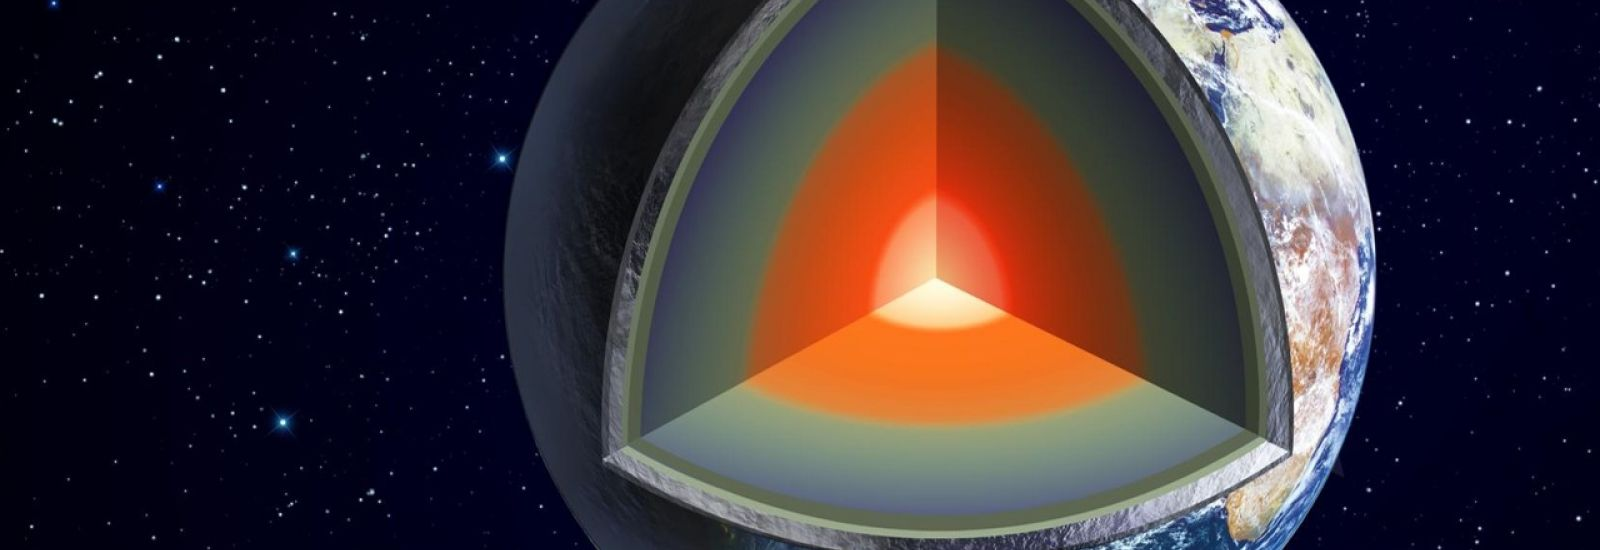 Illustration showing cut-away of the earth with coloured layers and a glowing core